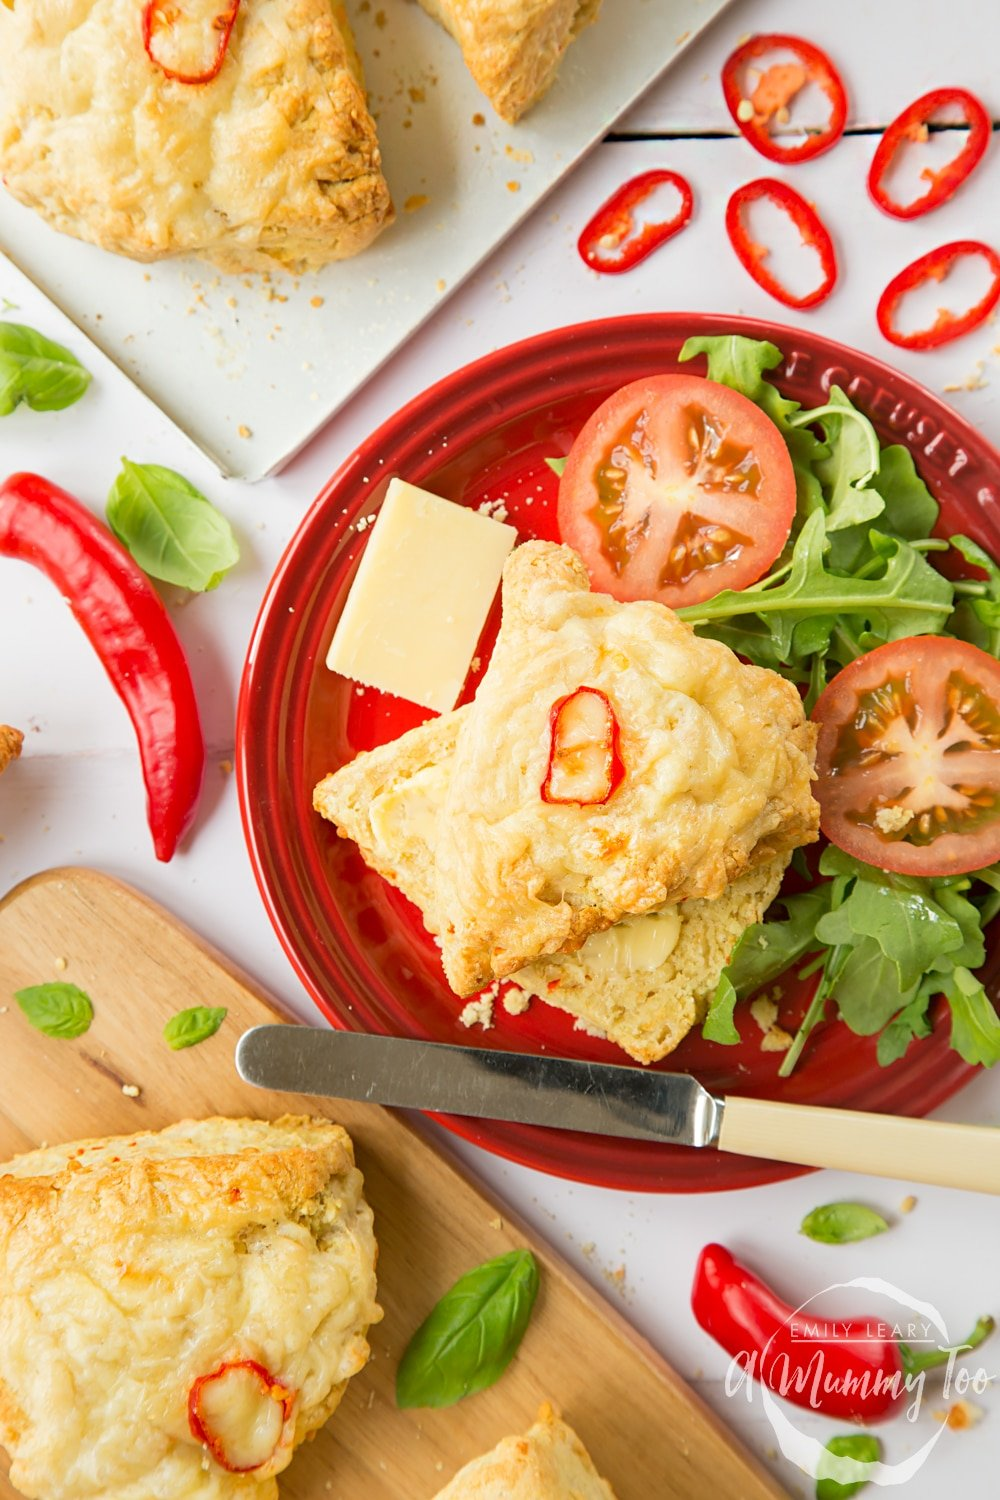 Chilli cheese savoury scones served with a side salad of lettuce and tomatoes